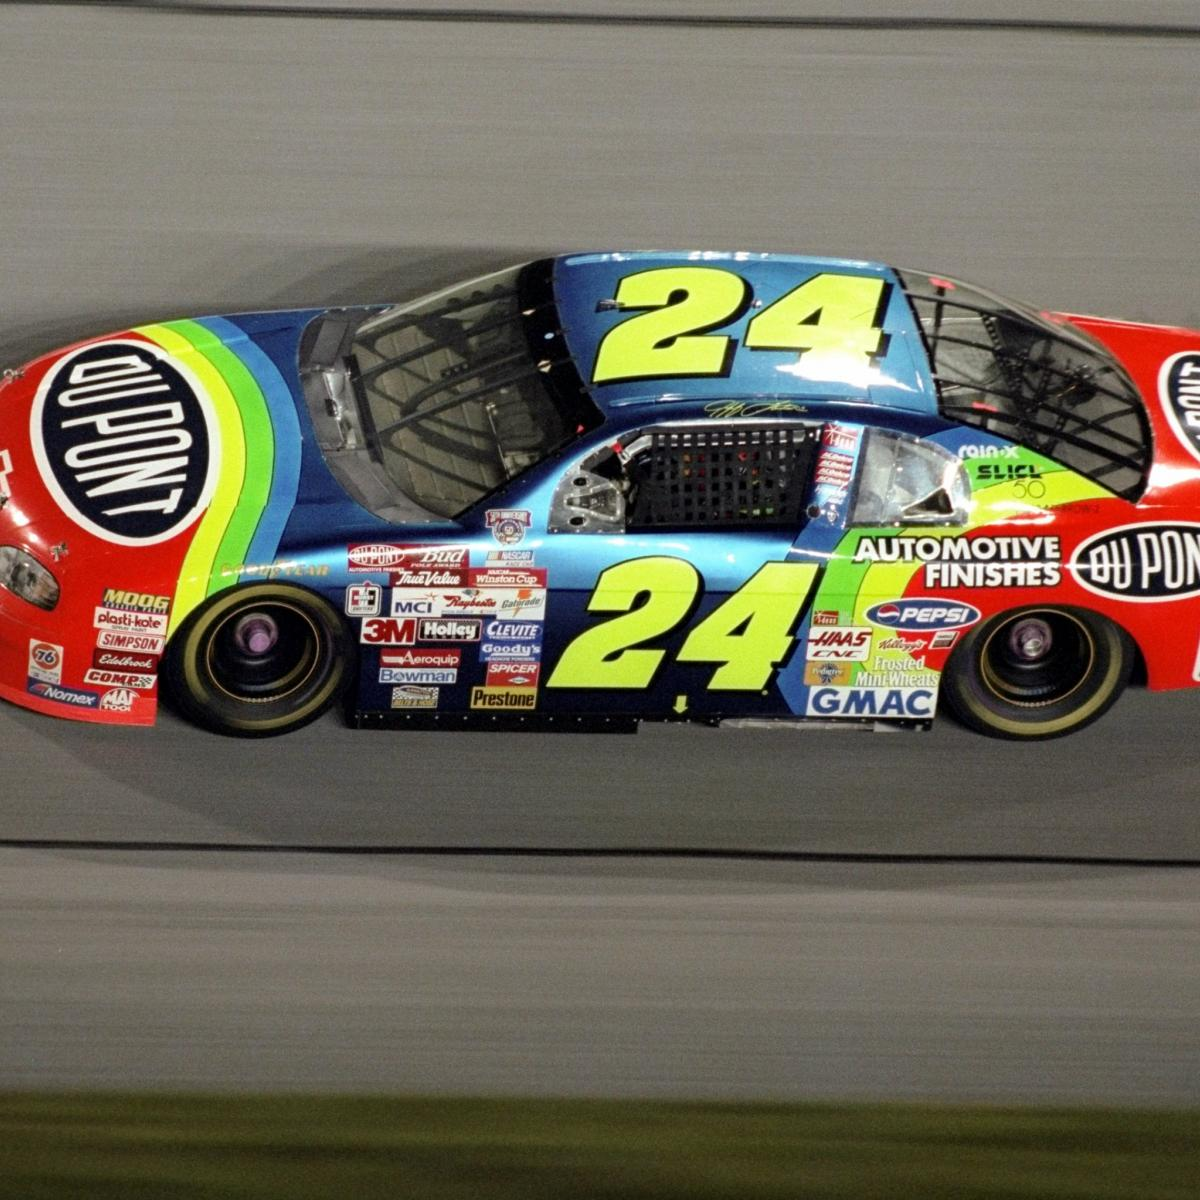 The 10 Best Looking Stock Cars in NASCAR History | Bleacher Report